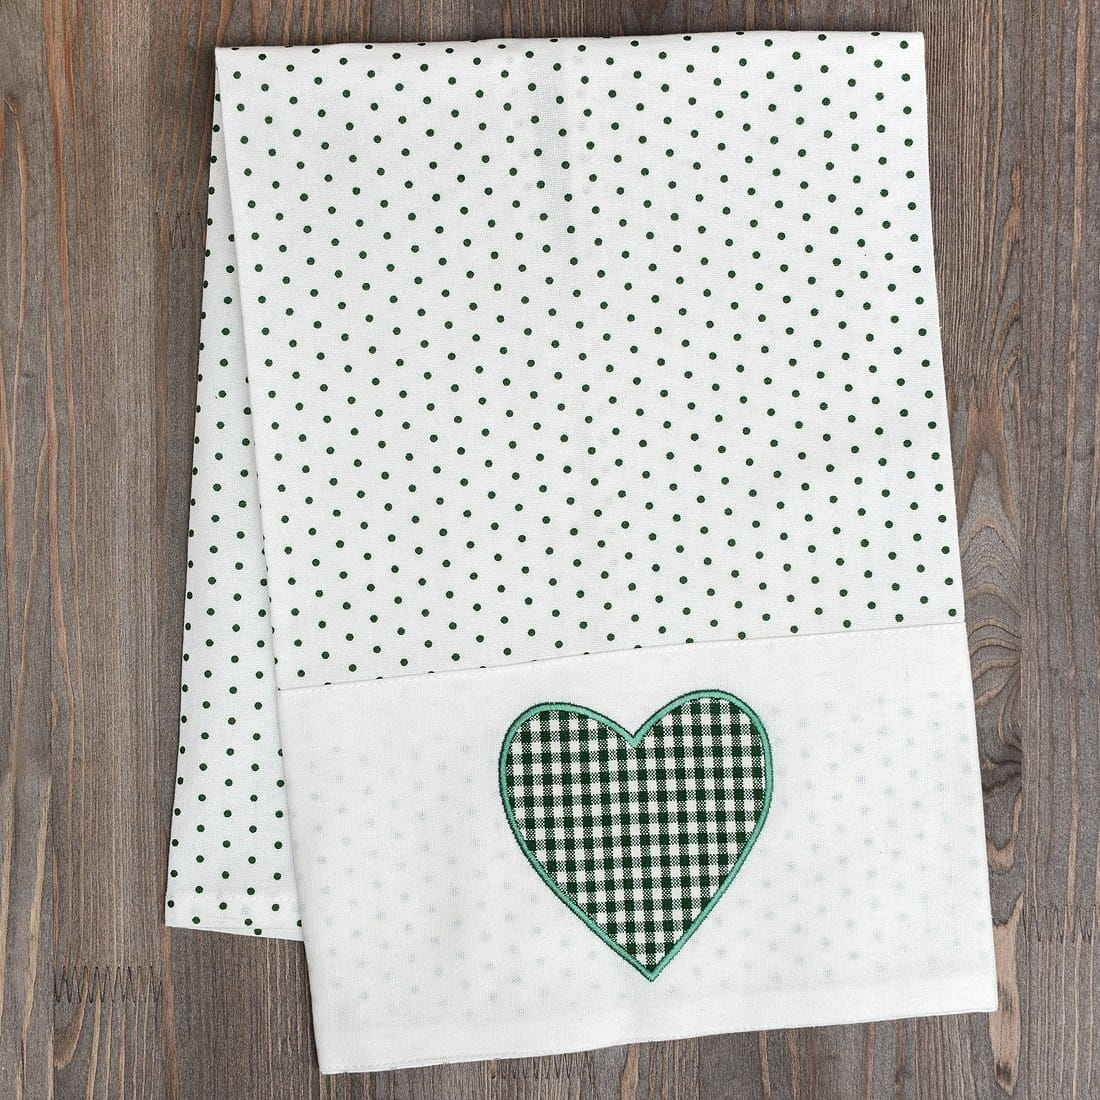 Полотенце Reesa Green Polka Dot, 50x70 см, Хлопок, Country Home Style, Австрия, Reesa Green